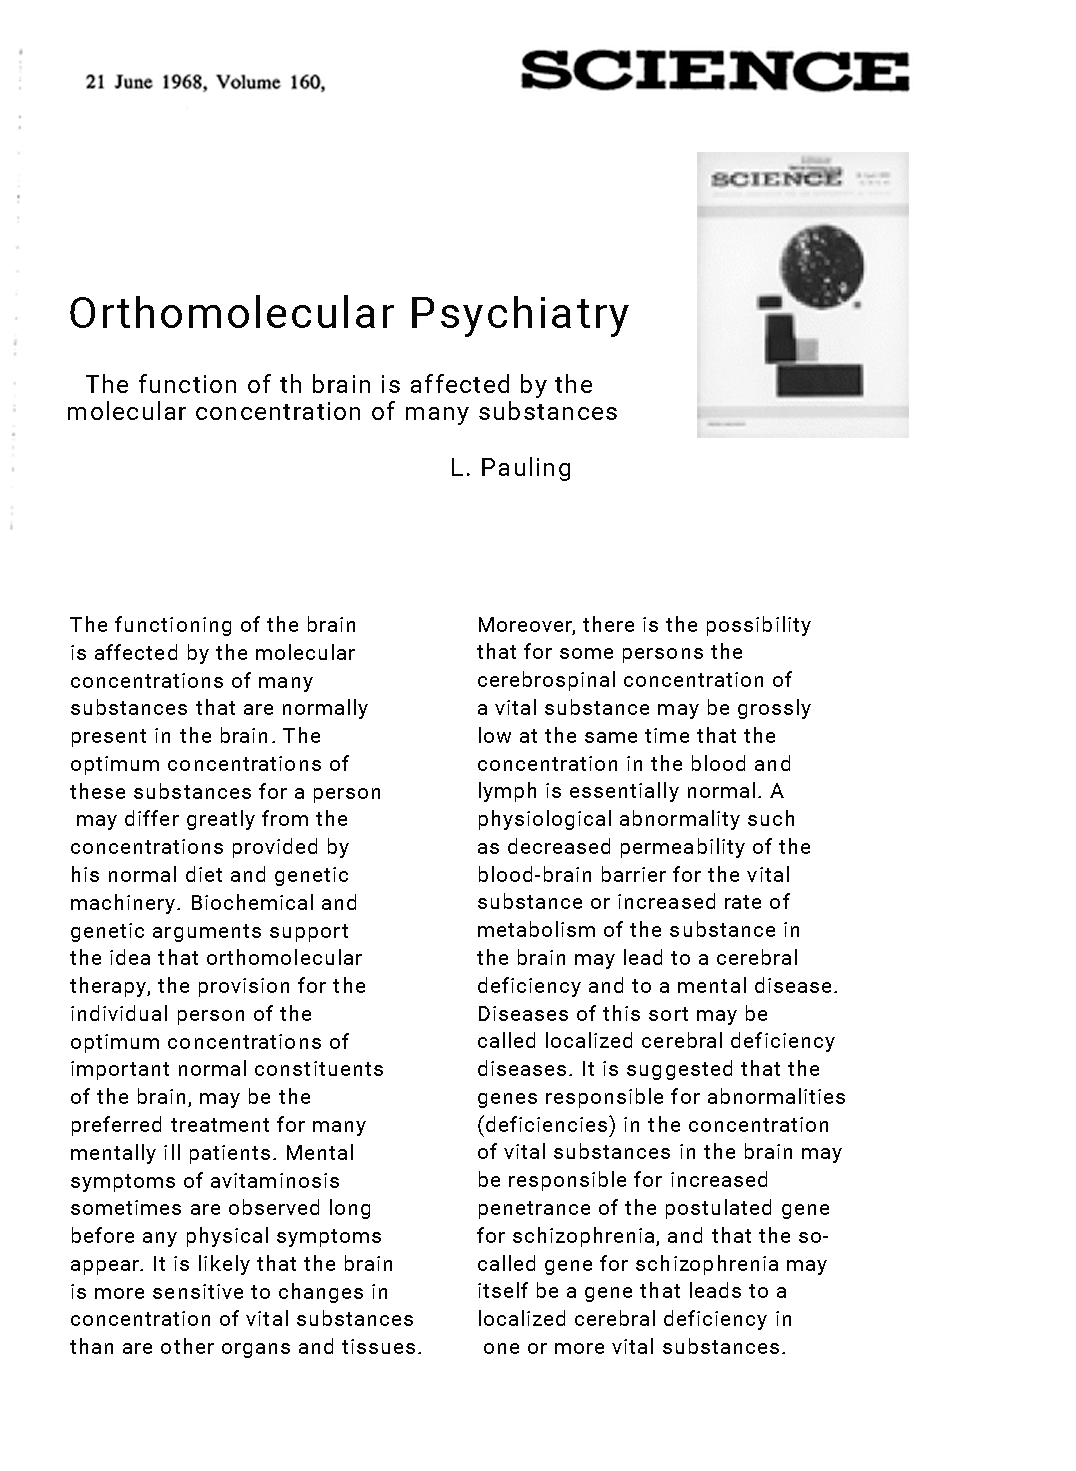 Orthomolecular Psychiatry Varying the concentrations of substances normally present in the human body may control mental disease